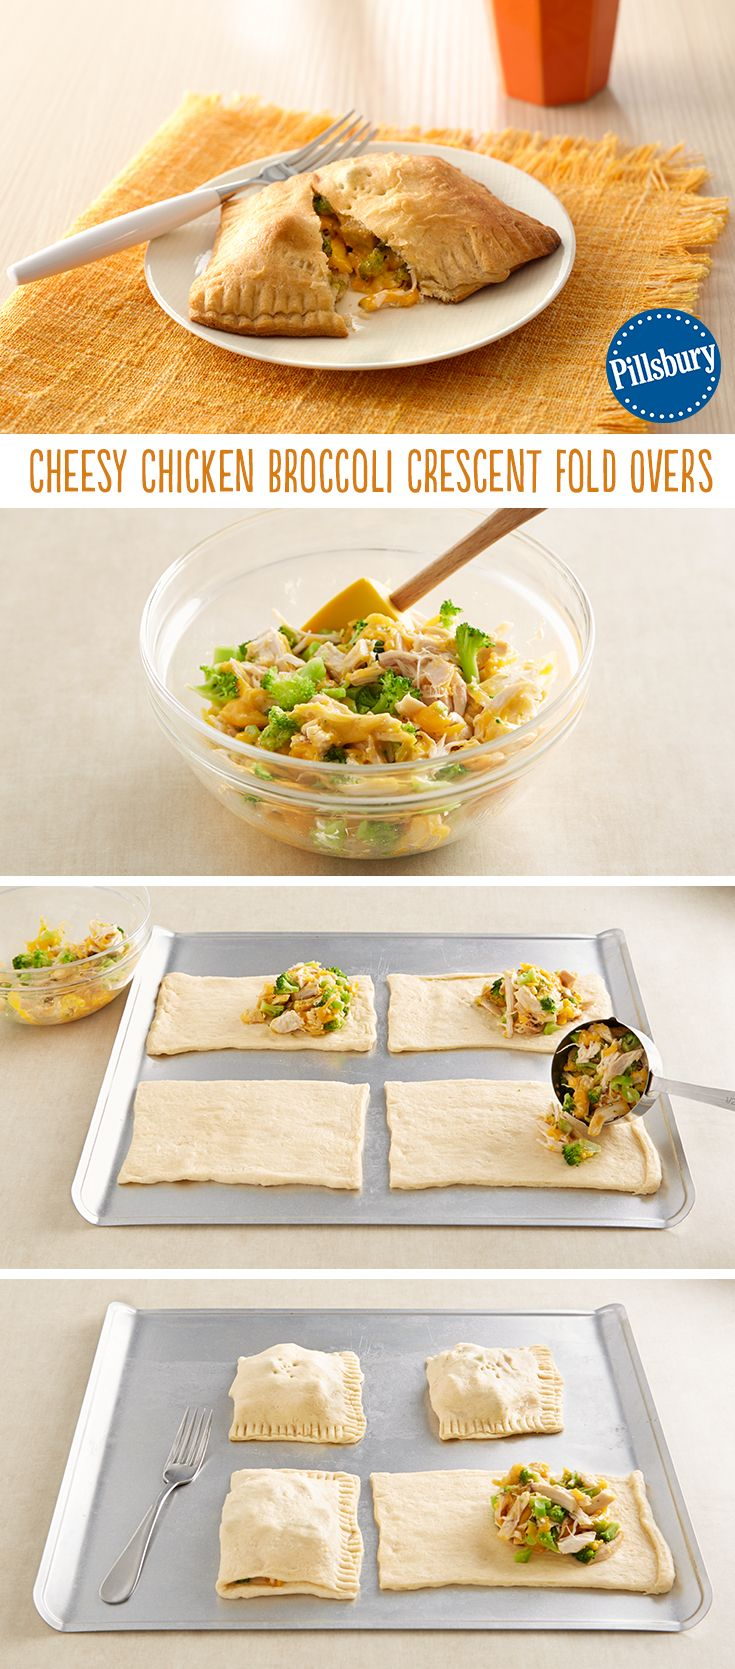 No need to hide all the nutritious ingredients in these pockets when they're surround by warm and flaky crescent dough! Weeknight dinner is super easy with this recipe.